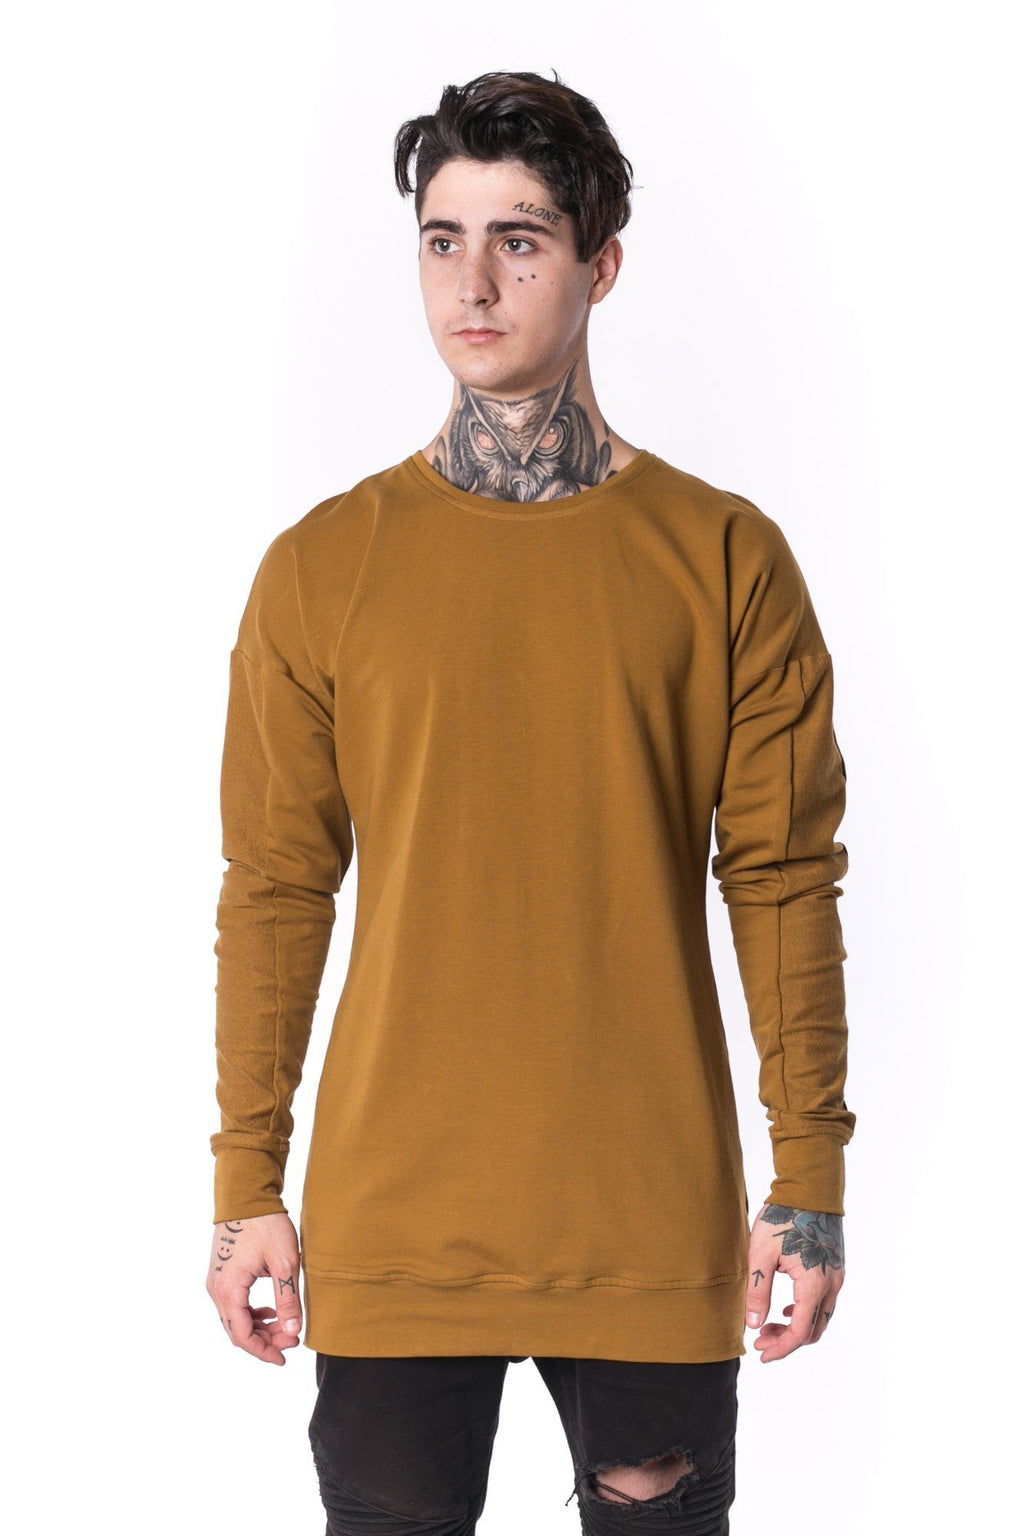 The Man Panelled Pullover Crewneck 17 // umber